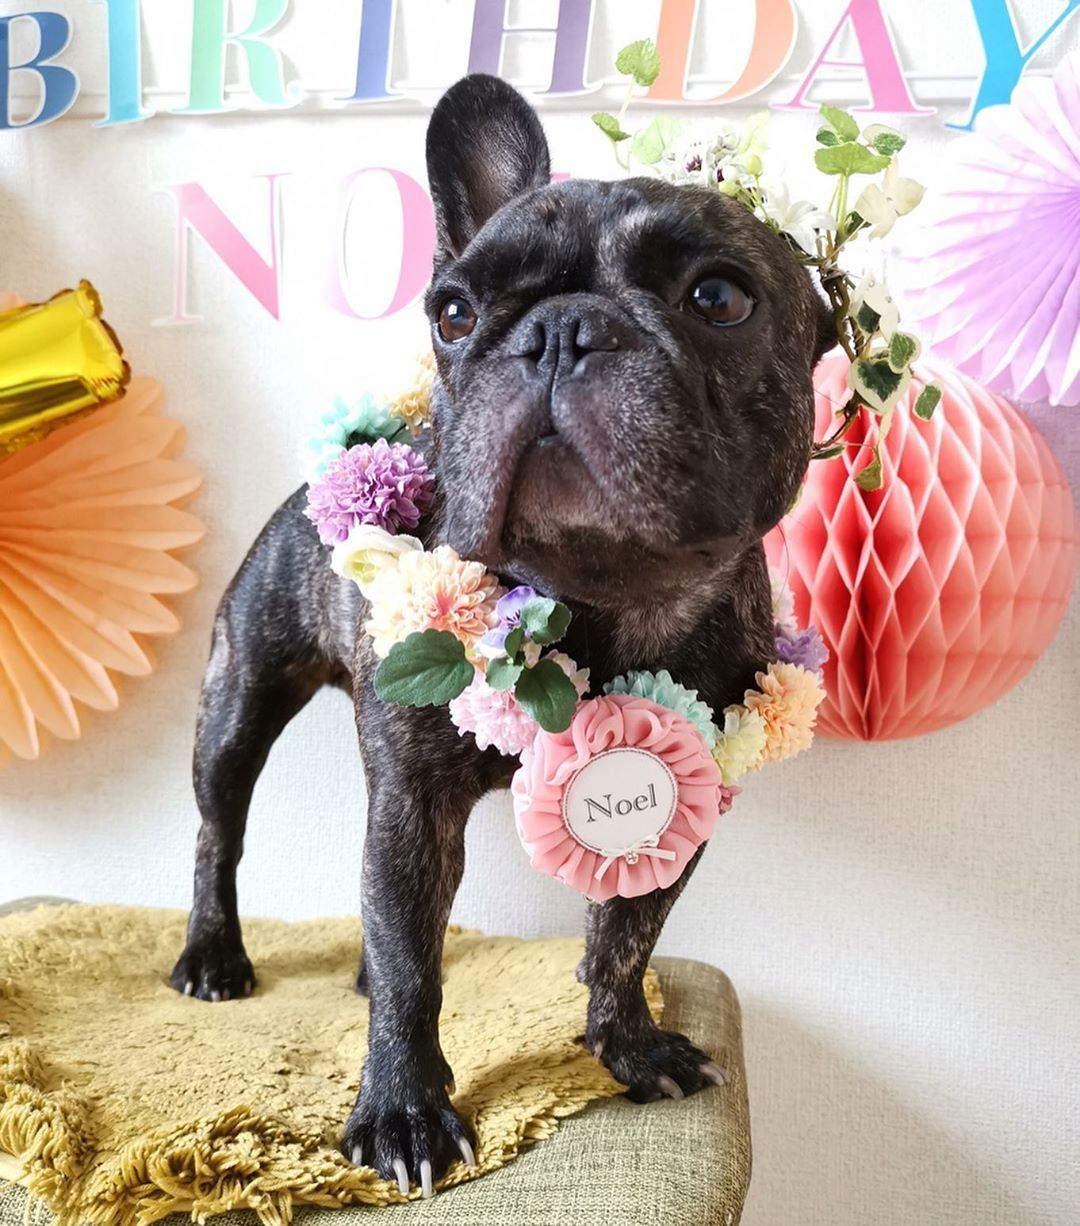 Bulldog Dogsofinstagram Dog Frenchie Dogs Bulldogsofinstagram